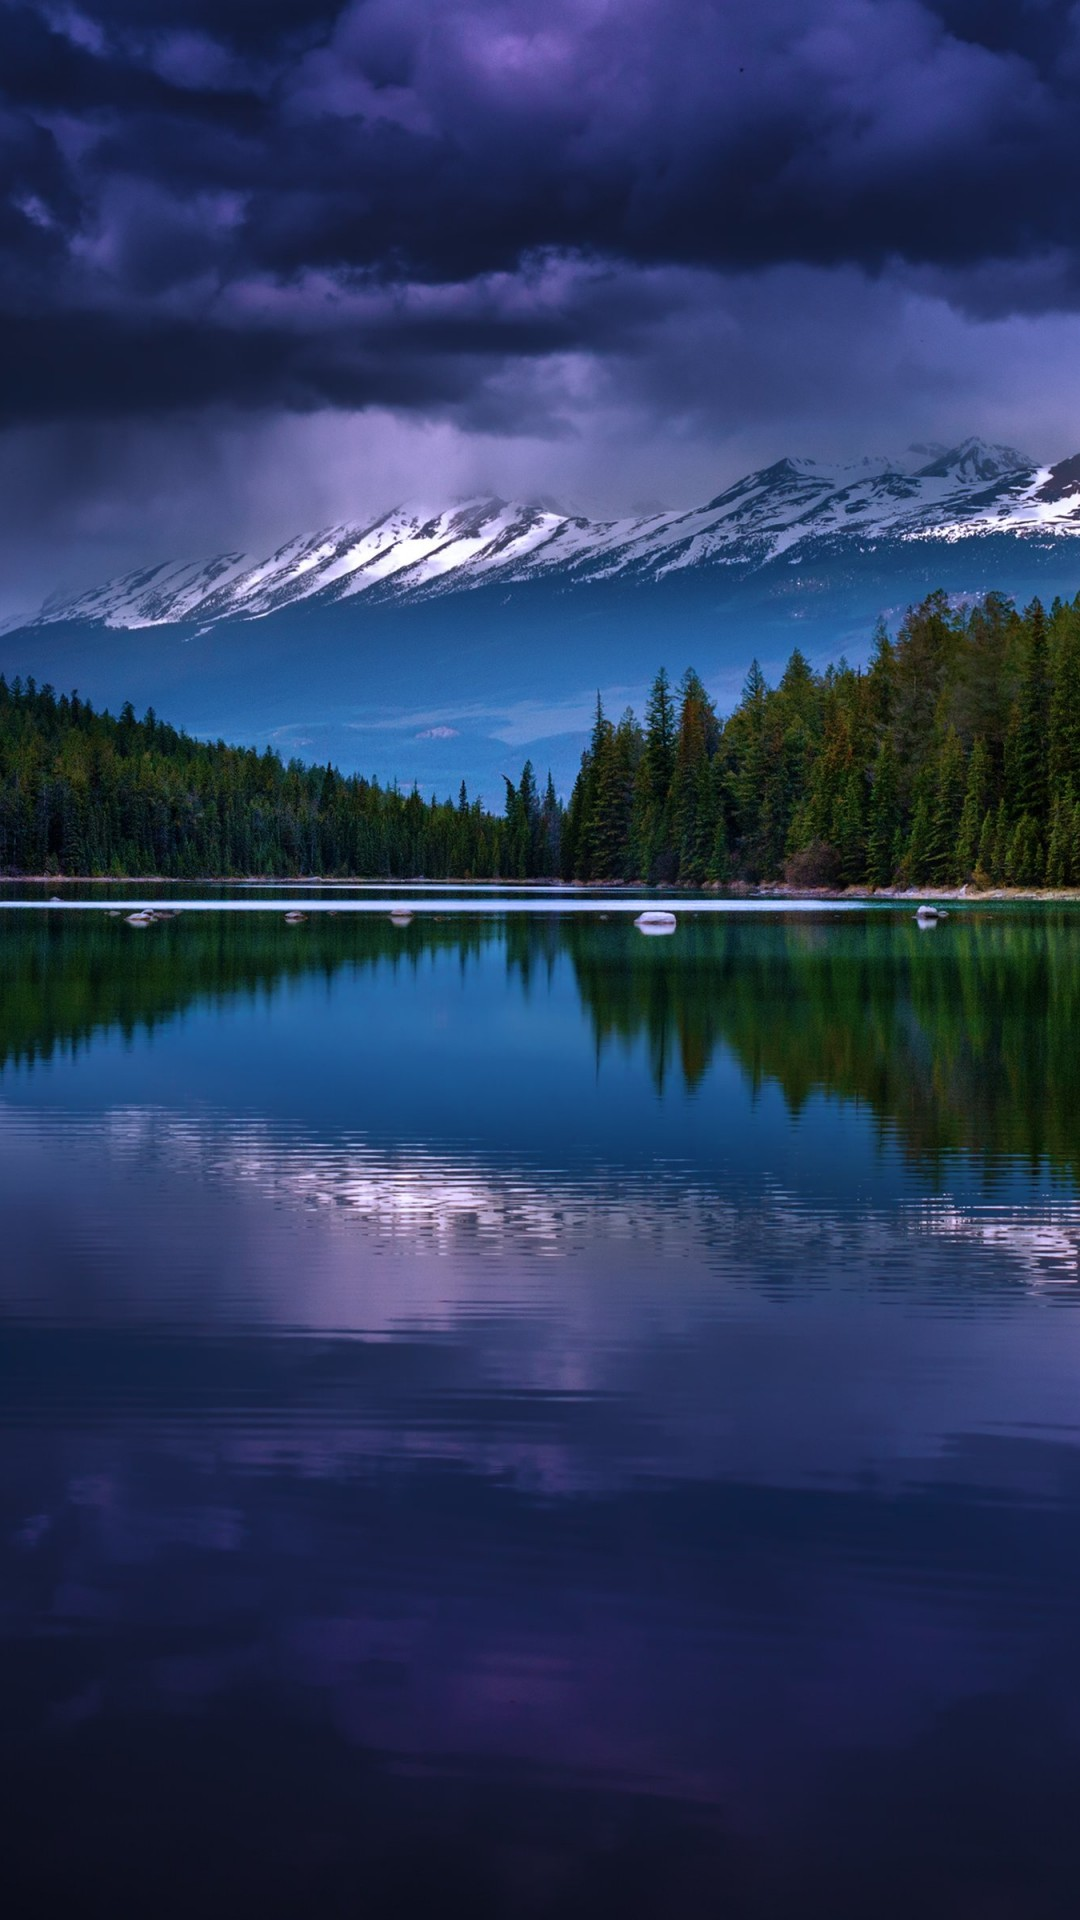 First Lake, Alberta, Canada Wallpaper for SONY Xperia Z2